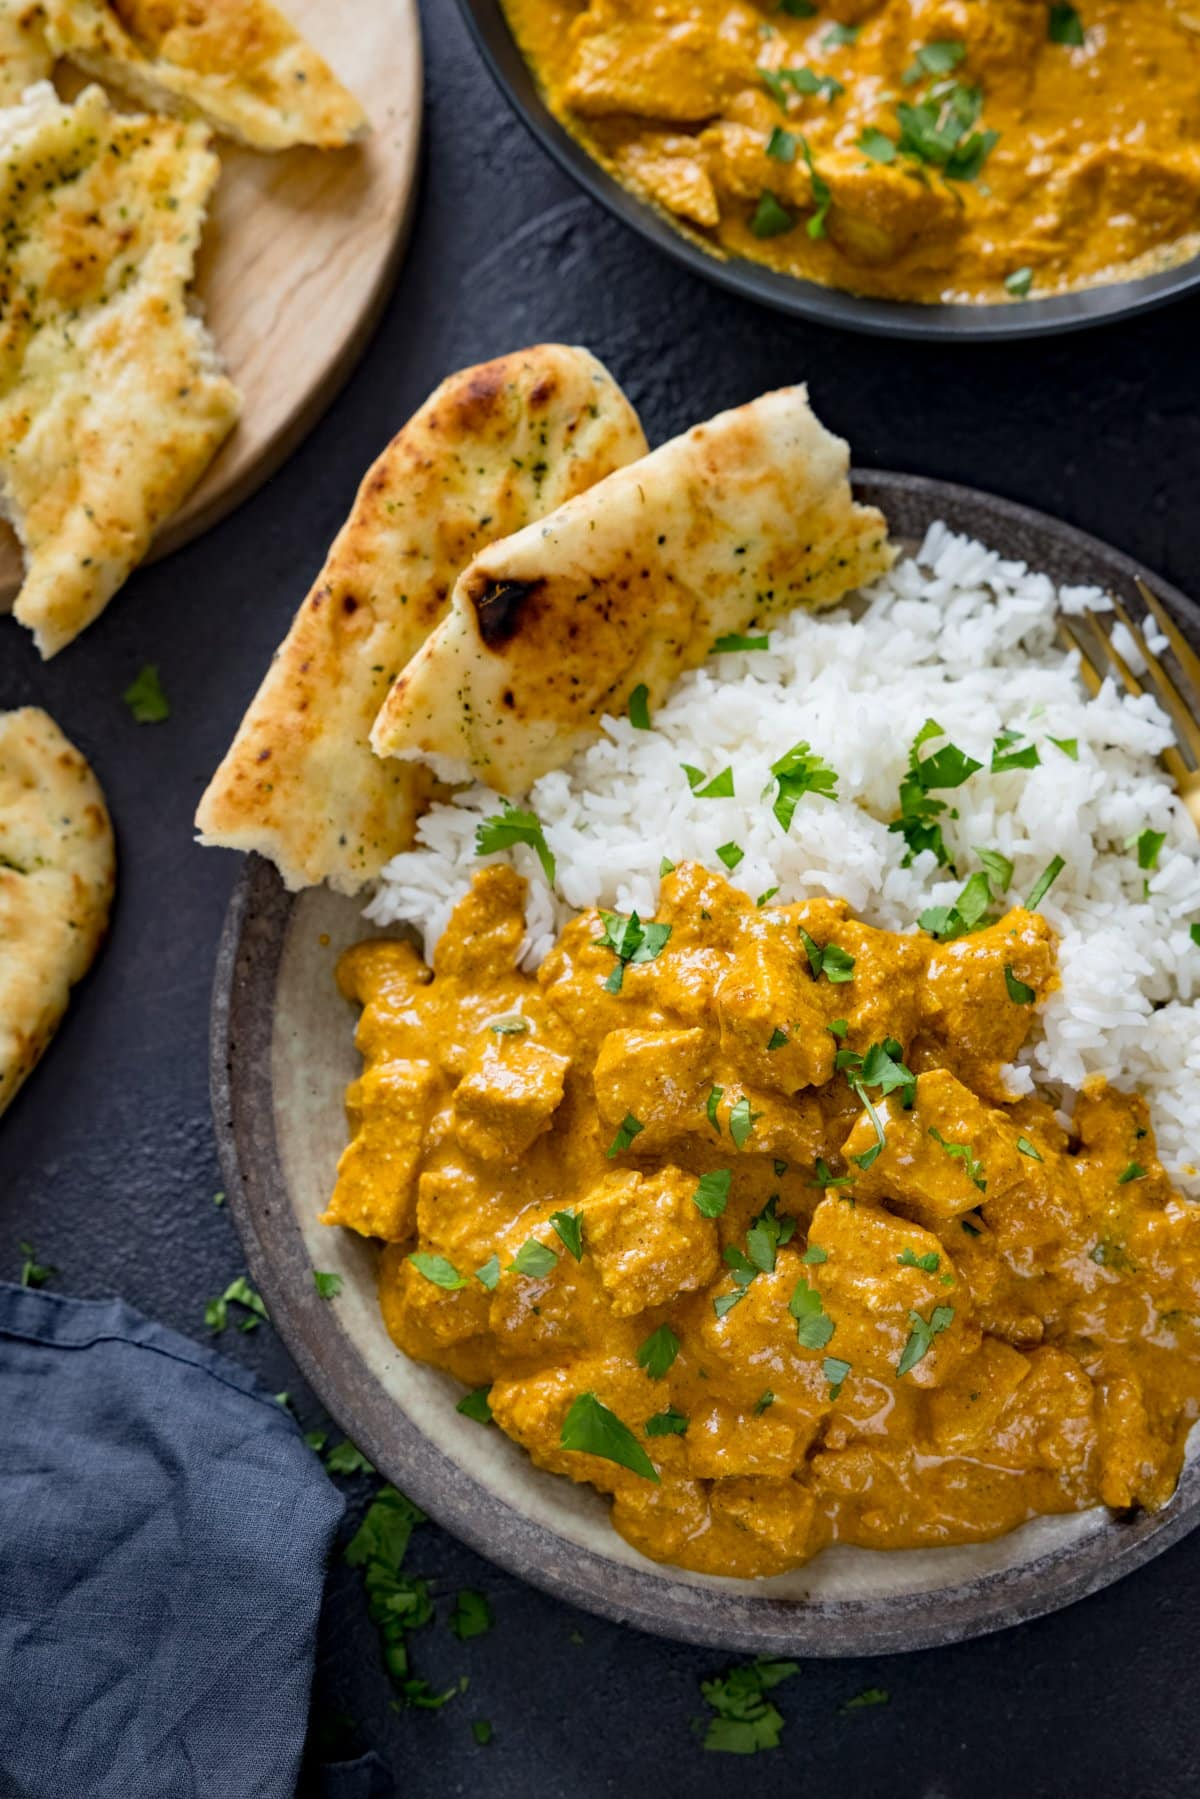 Chicken korma, rice and naan in a bowl on a dark background. Further bowl of curry and naan in background.